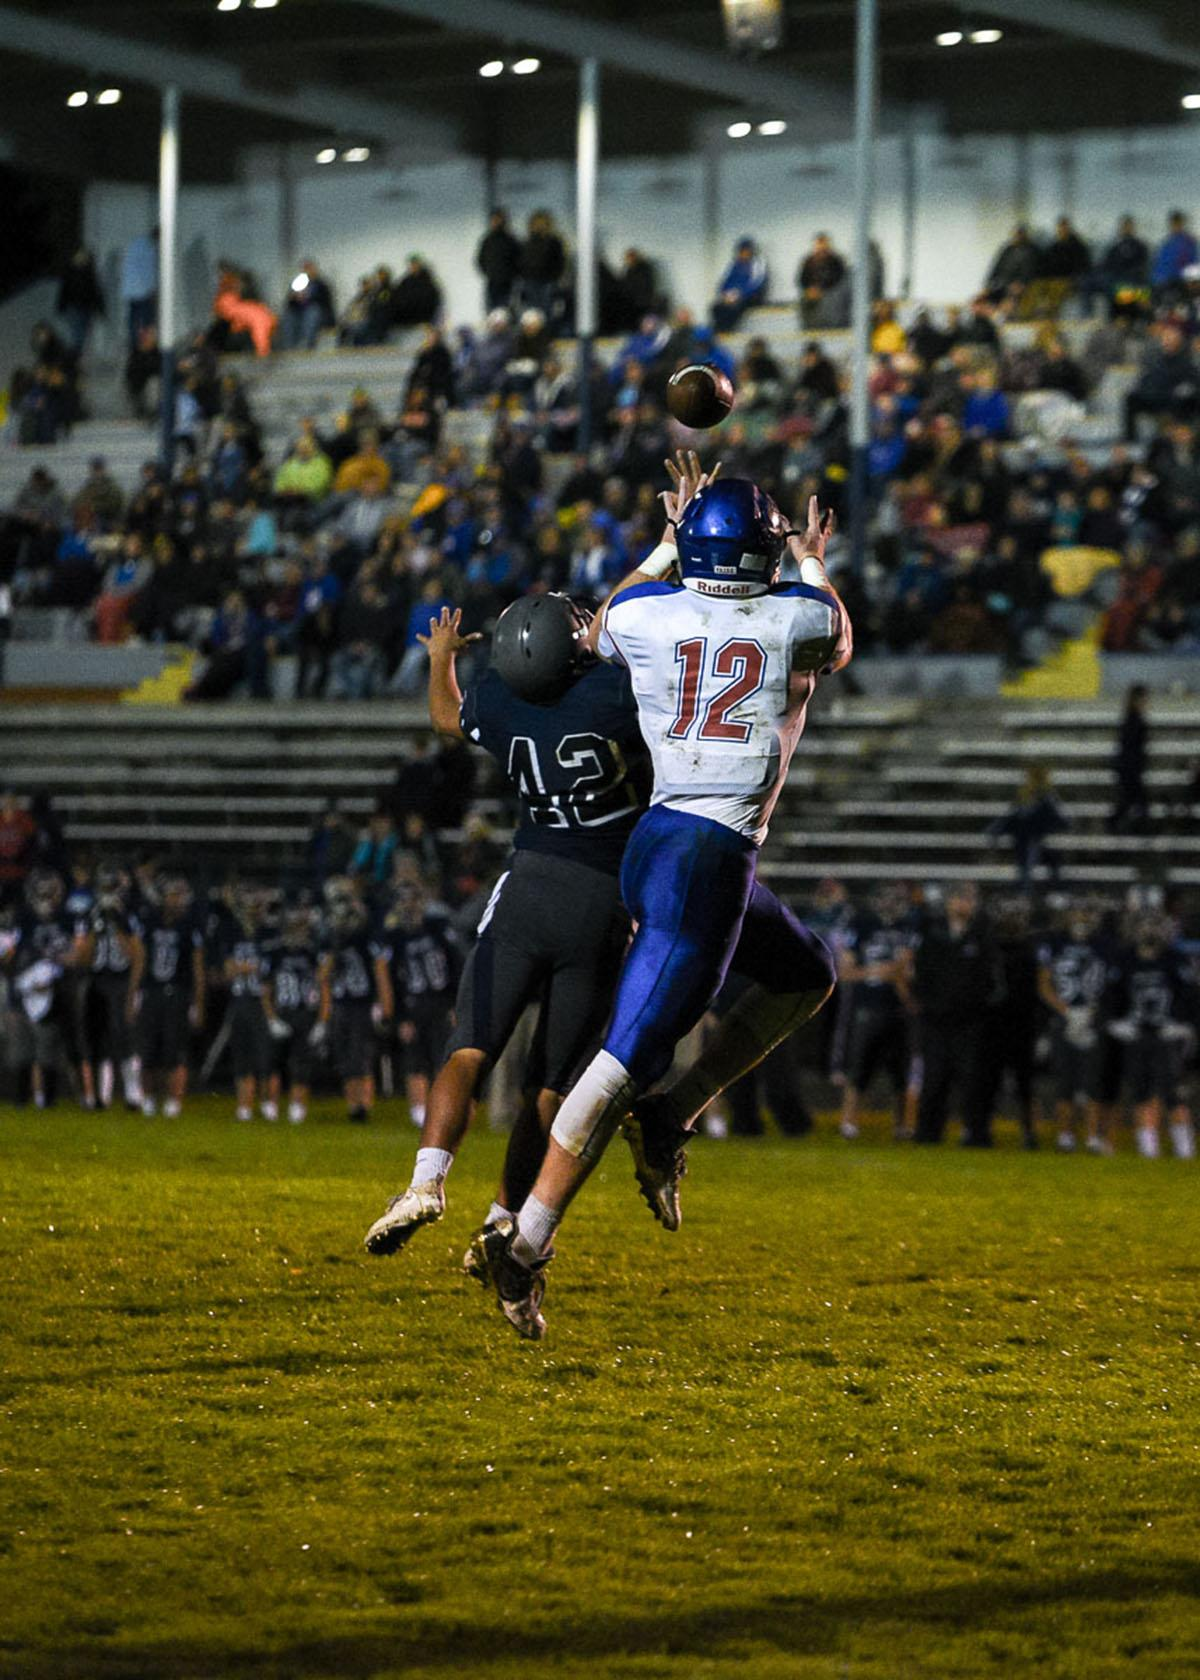 Churchill tight end Jax Arnold (#12) catches a pass for a touchdown during the Lancer's 56-7 victory over Springfield remaining 7-0 on the season. Photo by Jeff Dean, Oregon News Lab